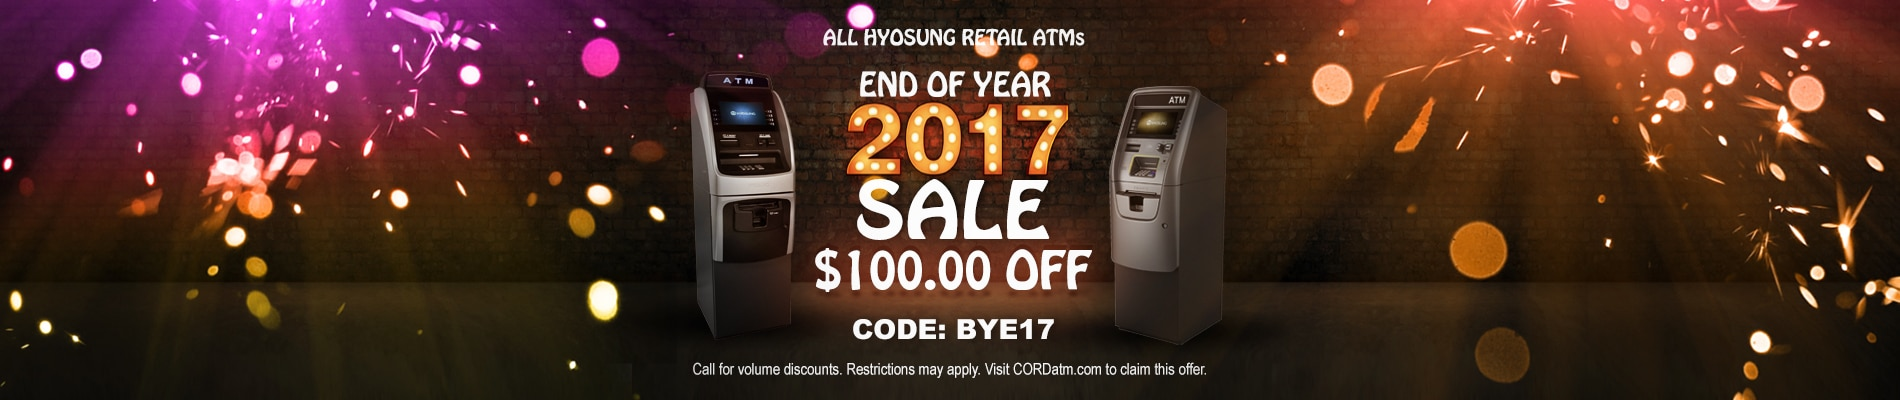 CORDatm.com - End of Year Sale. $100 OFF Hyosung ATMs